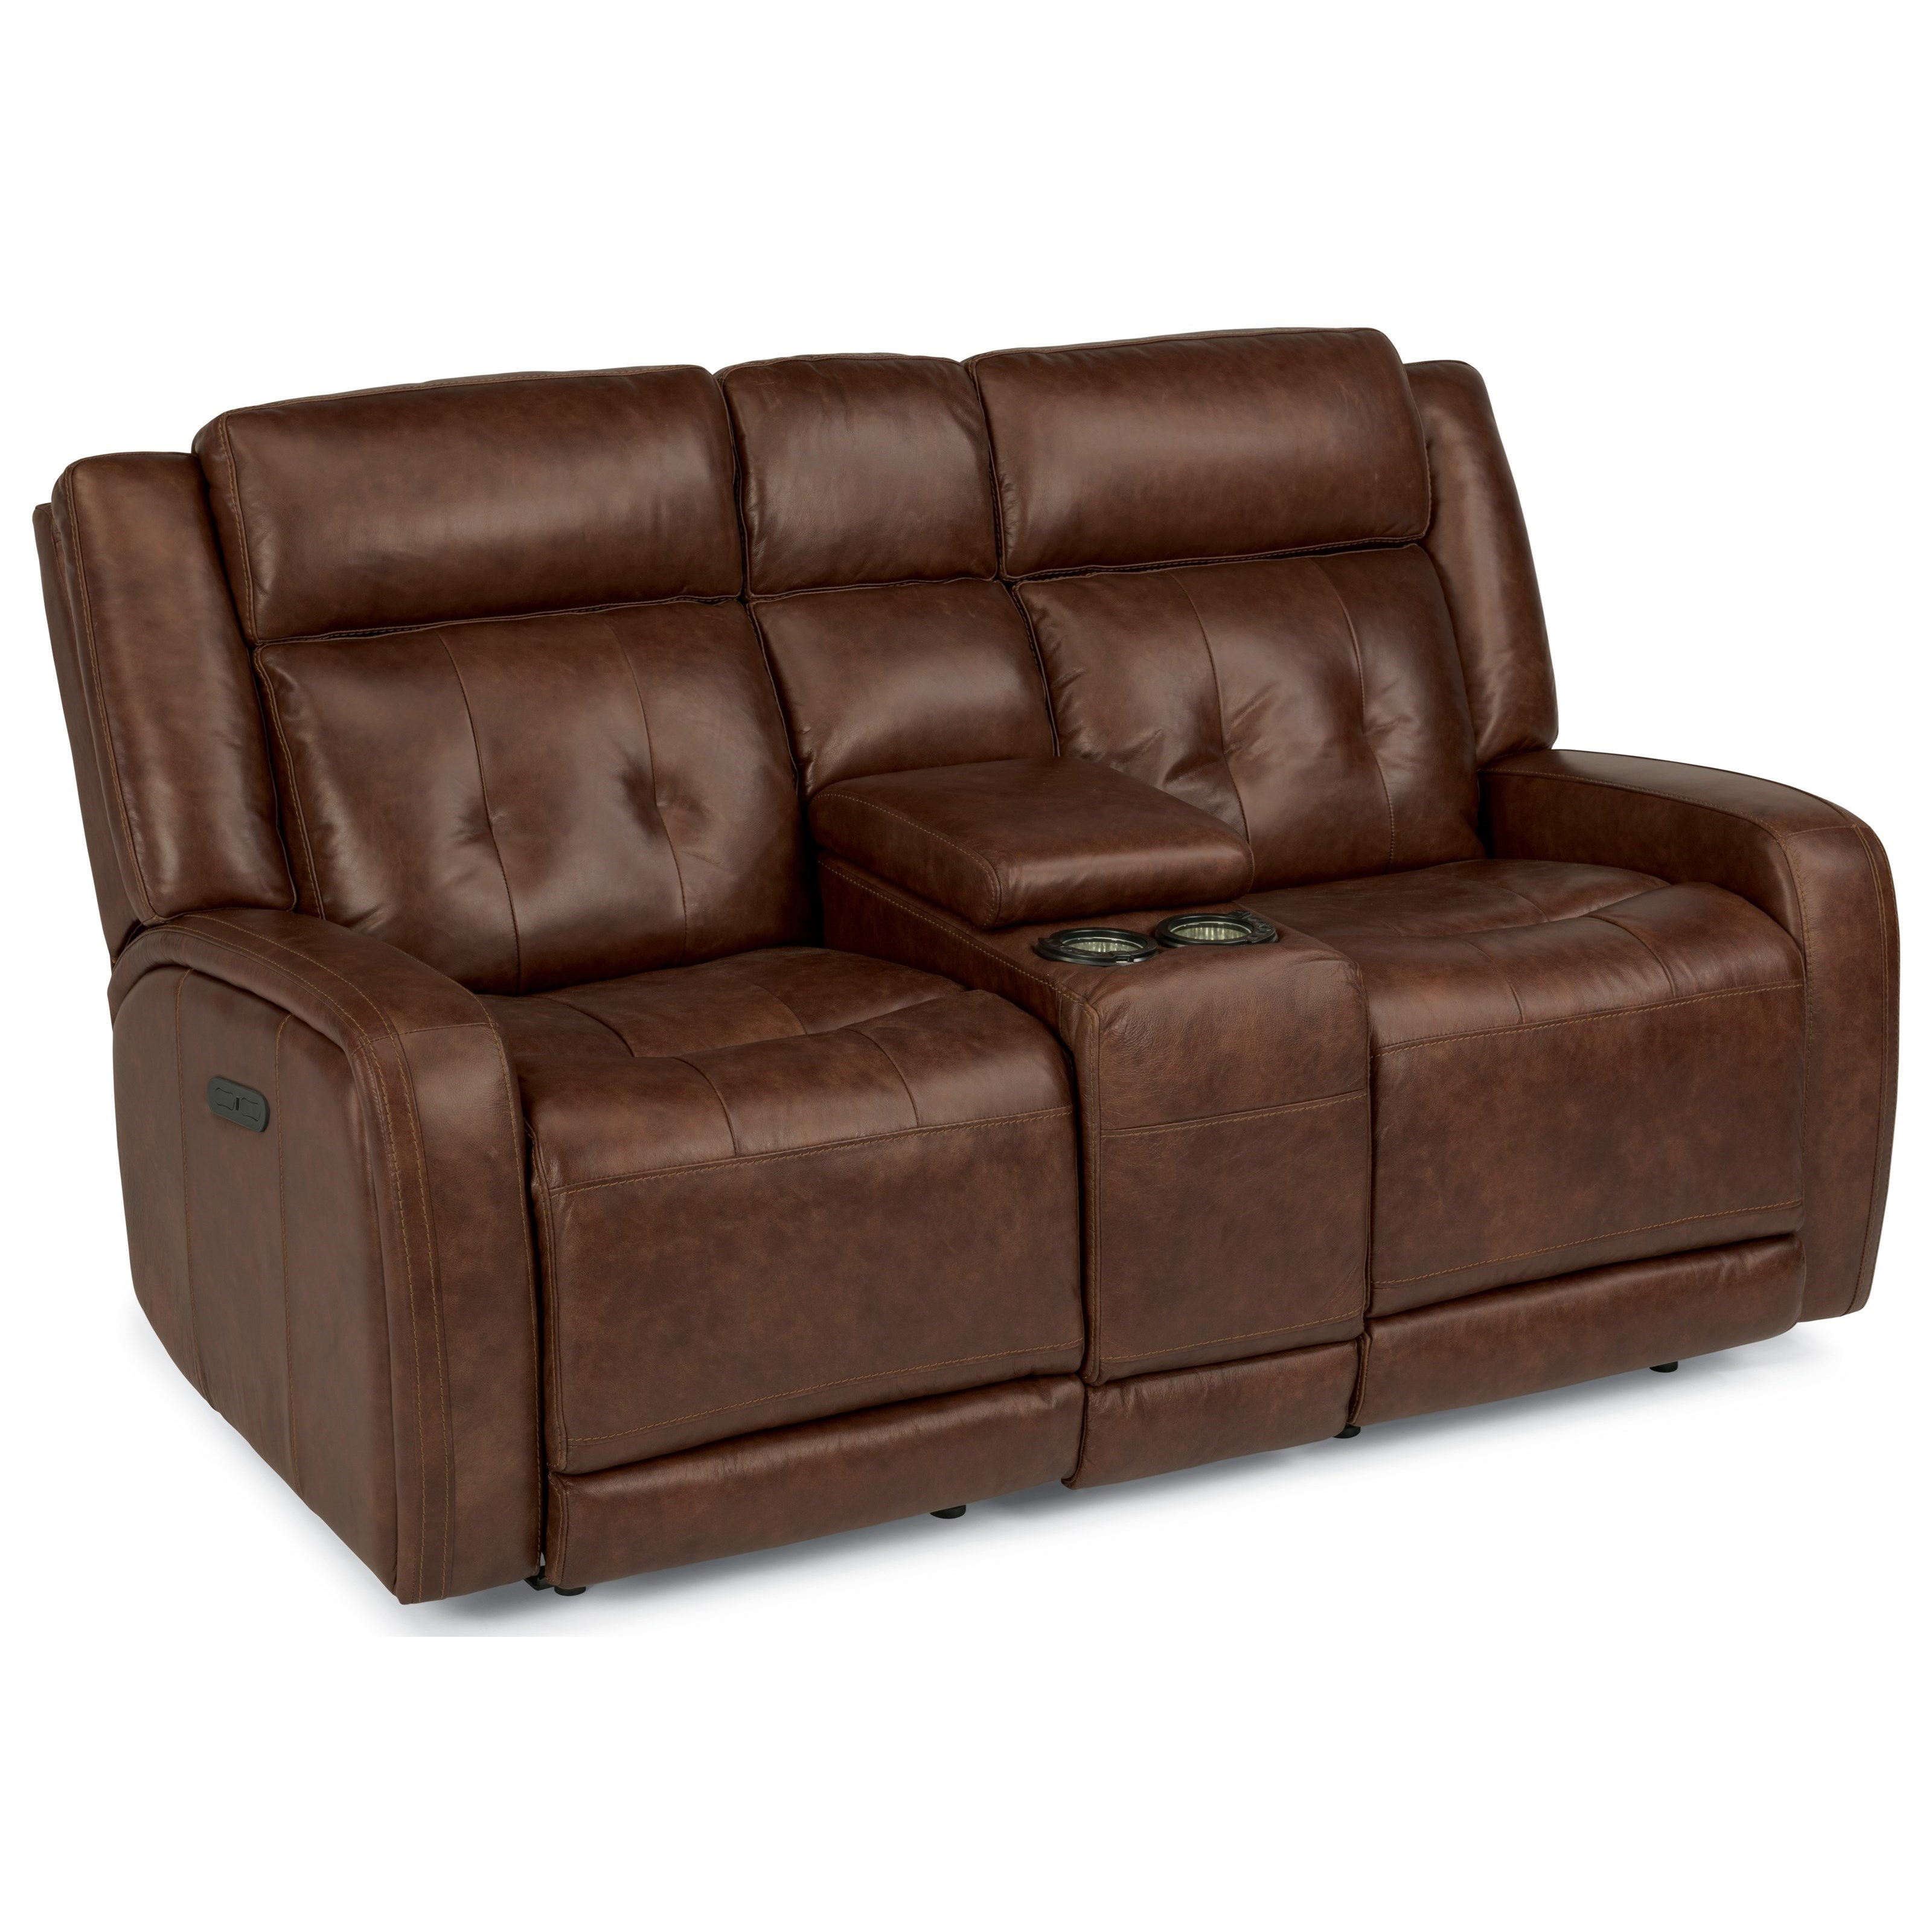 Flexsteel Latitudes-Jude Power Reclining Love Seat with Console - Item Number: 1559-64PH